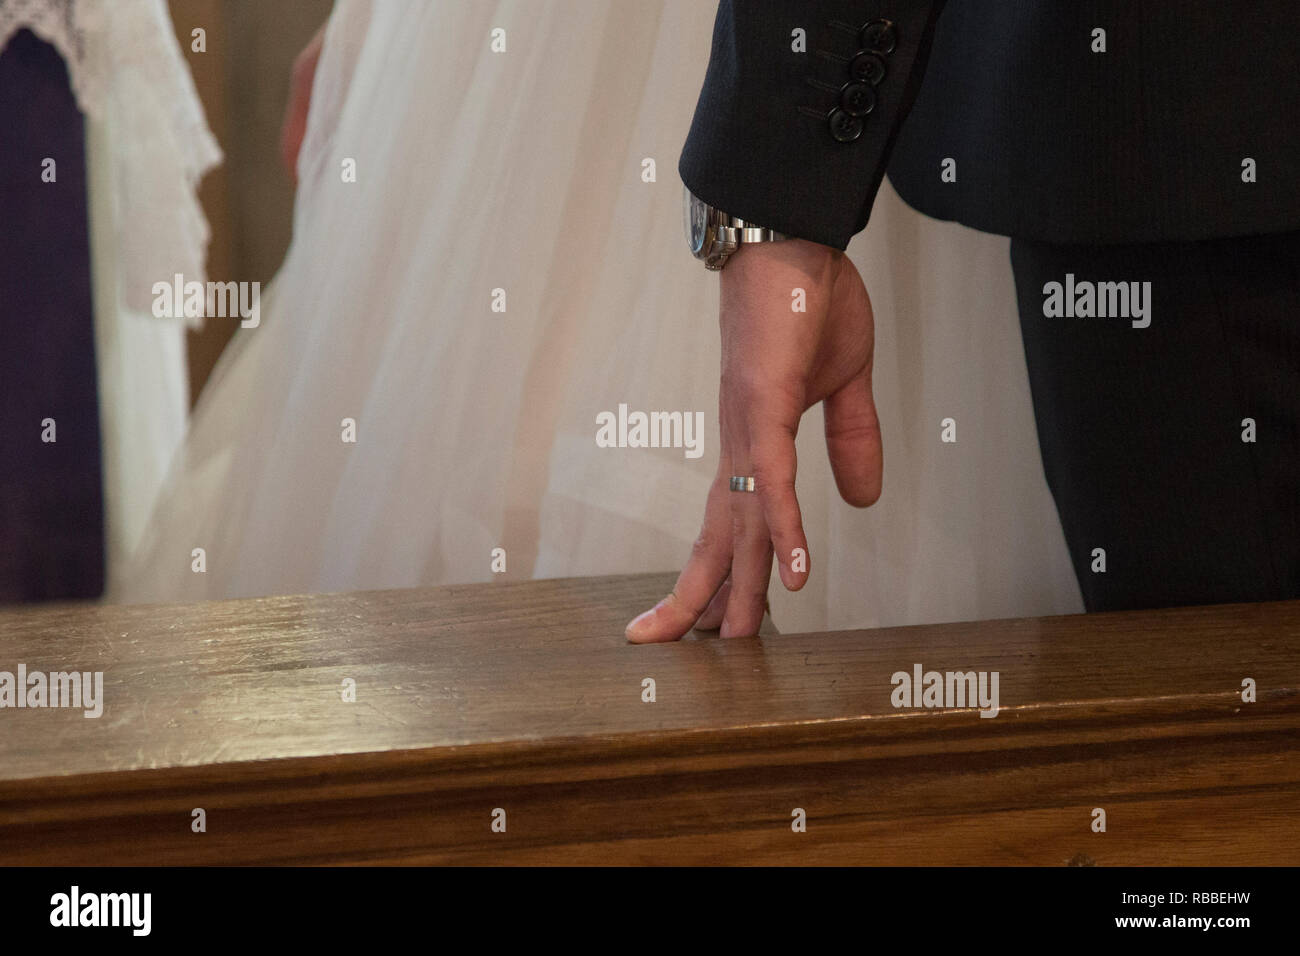 Close up of the grooms hand whilst waiting to sign the register, wedding ring is on his finger. - Stock Image